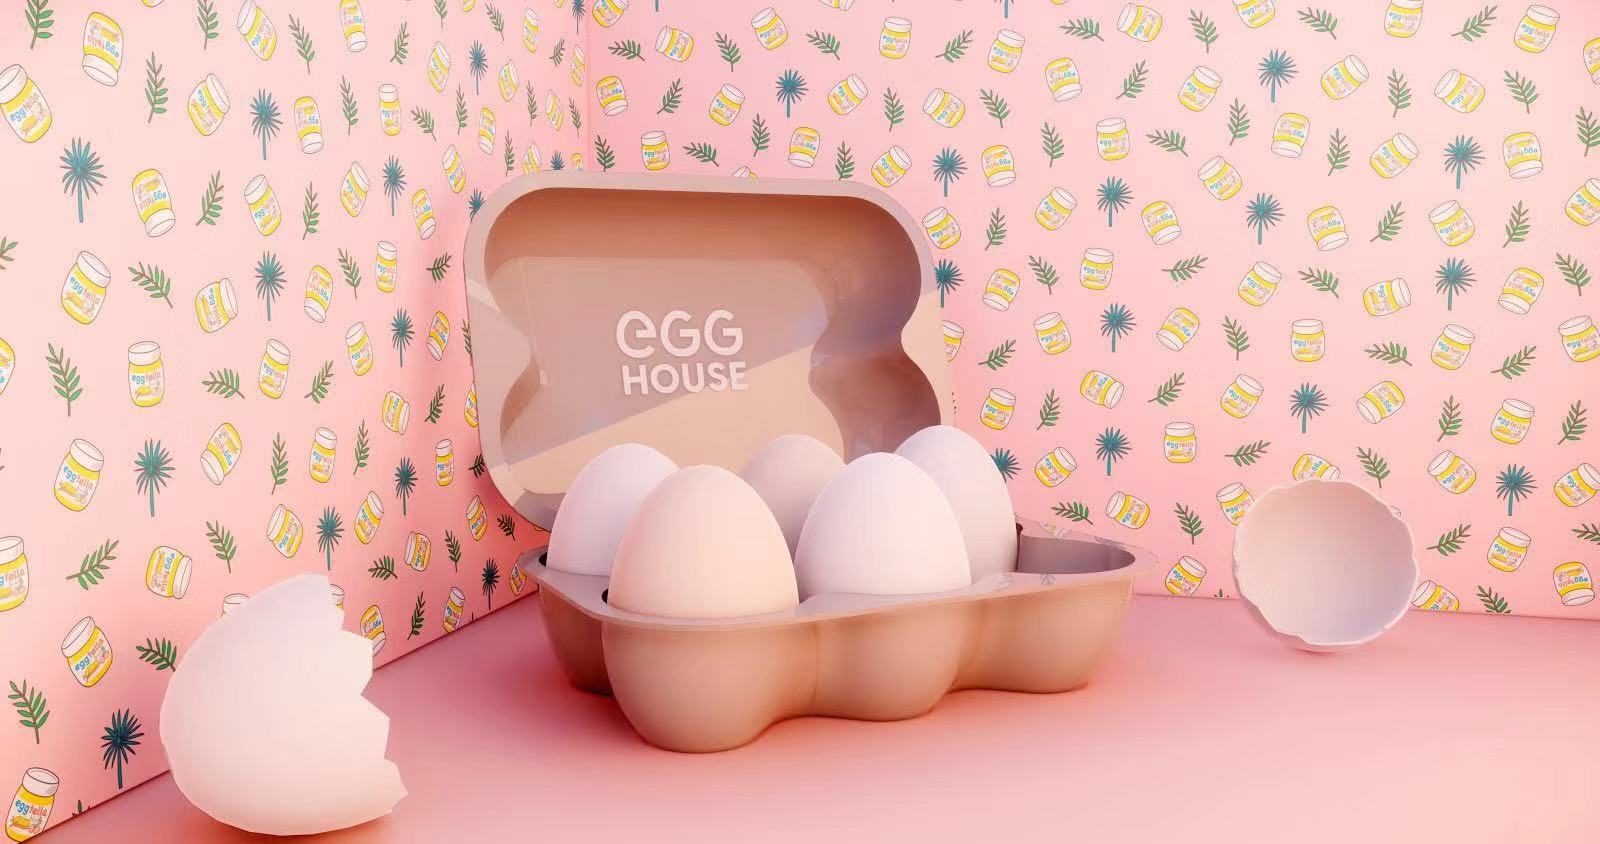 Tickets for The Egg House Pop-up NYC in New York from ShowClix on pizza house design, 40s house design, traditional malay house design, electronic house design, bleach house design, goth house design, folk house design, 90s house design, 60's house design, fab house design, retro house design, east coast house design, older house design, sports house design, classic house design, chill house design, post modern house design, the best house design, bad house design, jungle house design,